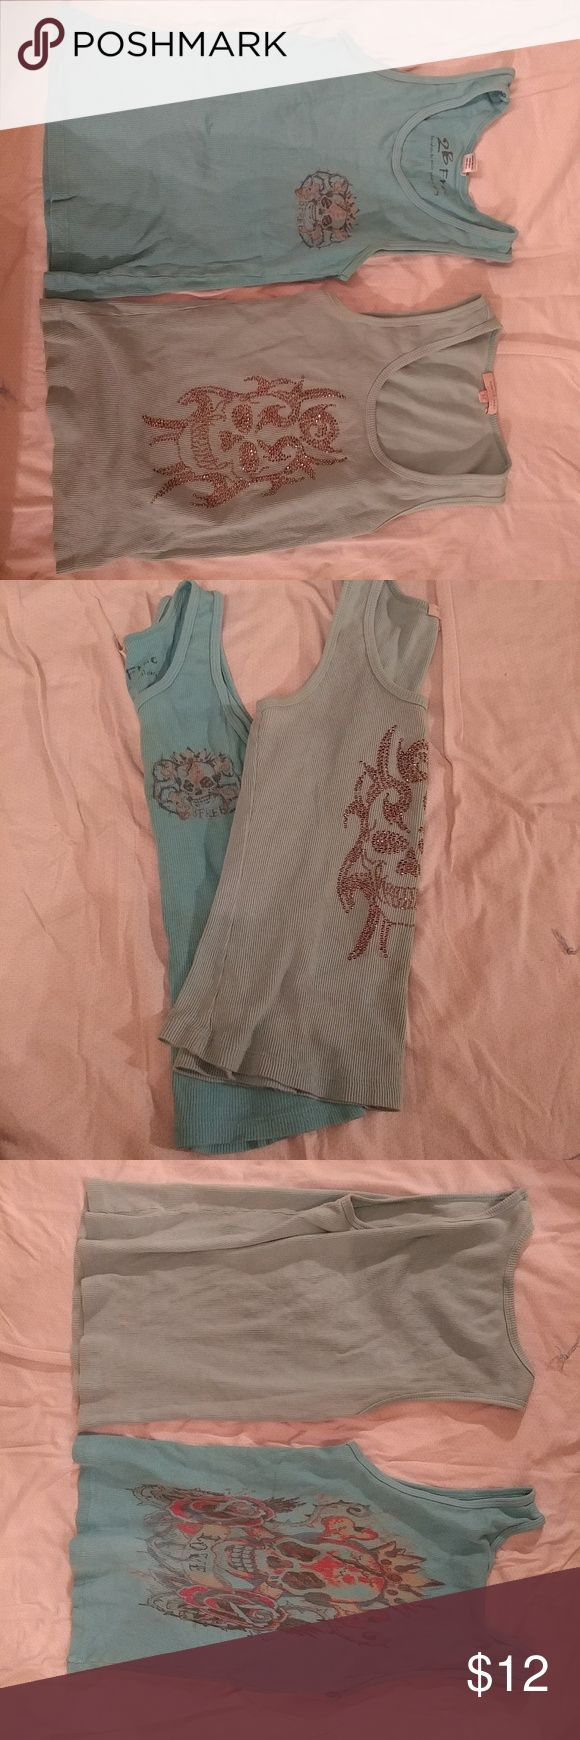 Lot of 2 Skull tanks Calling all rock and roll lovers!! This listing is for 2 wife beater style tanks. Both are from higher end designer brands. Both are shorter style (not as short as crop tops tho) cute for that rocker look. Both are bluish/mint color. Rhinestone skull tank is from Romeo & Juilet Couture. Floral Skull design is from 2B Free. Both size Medium but both fit like a small. Worn and washed amd show minor signs from that. Neither r have major damages or stains. From high end…